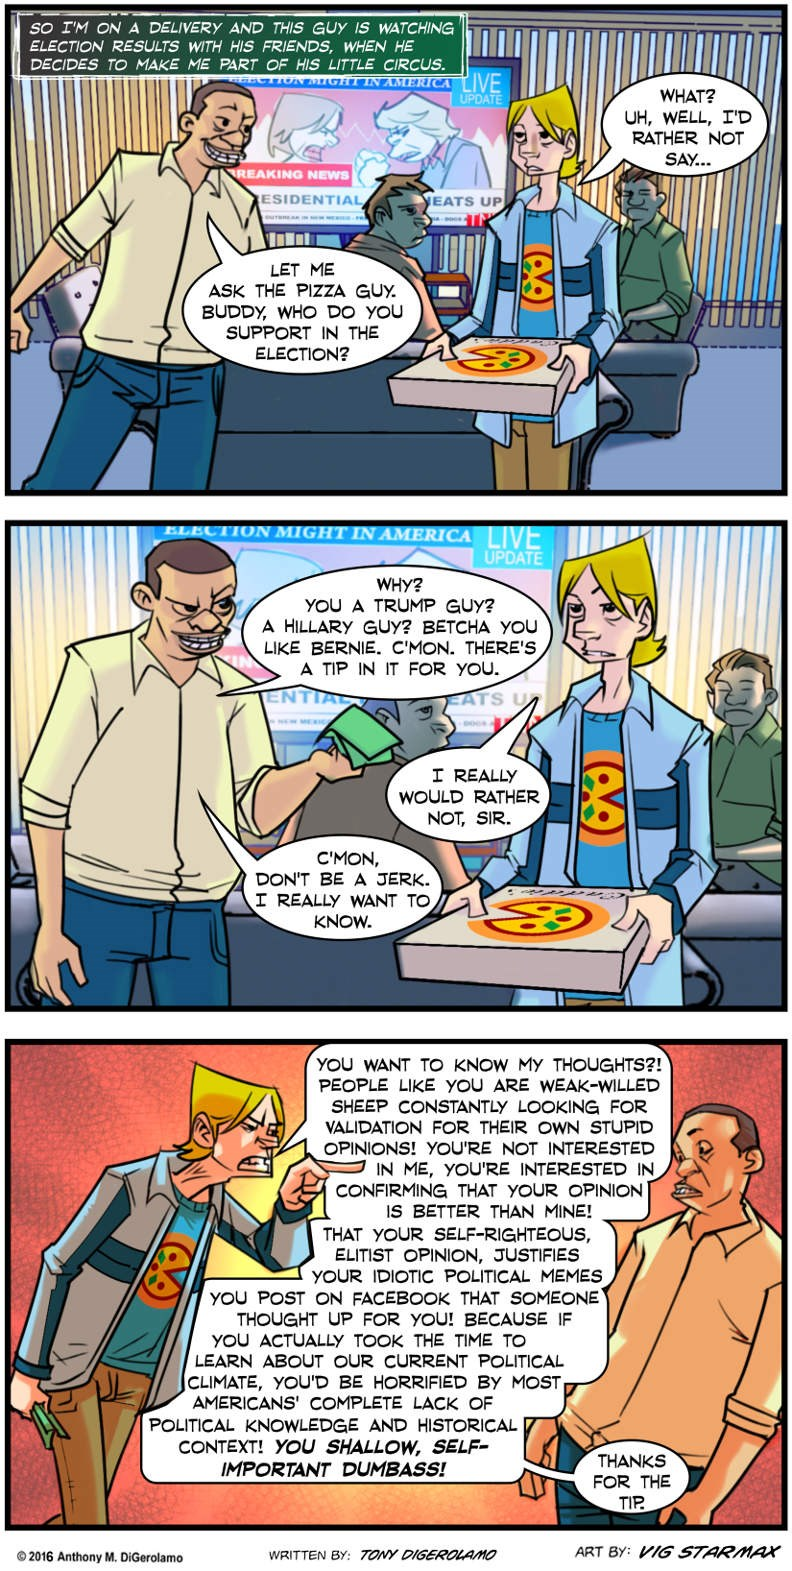 Comics Tales of Pizza: Don't Ask the Pizza Guy